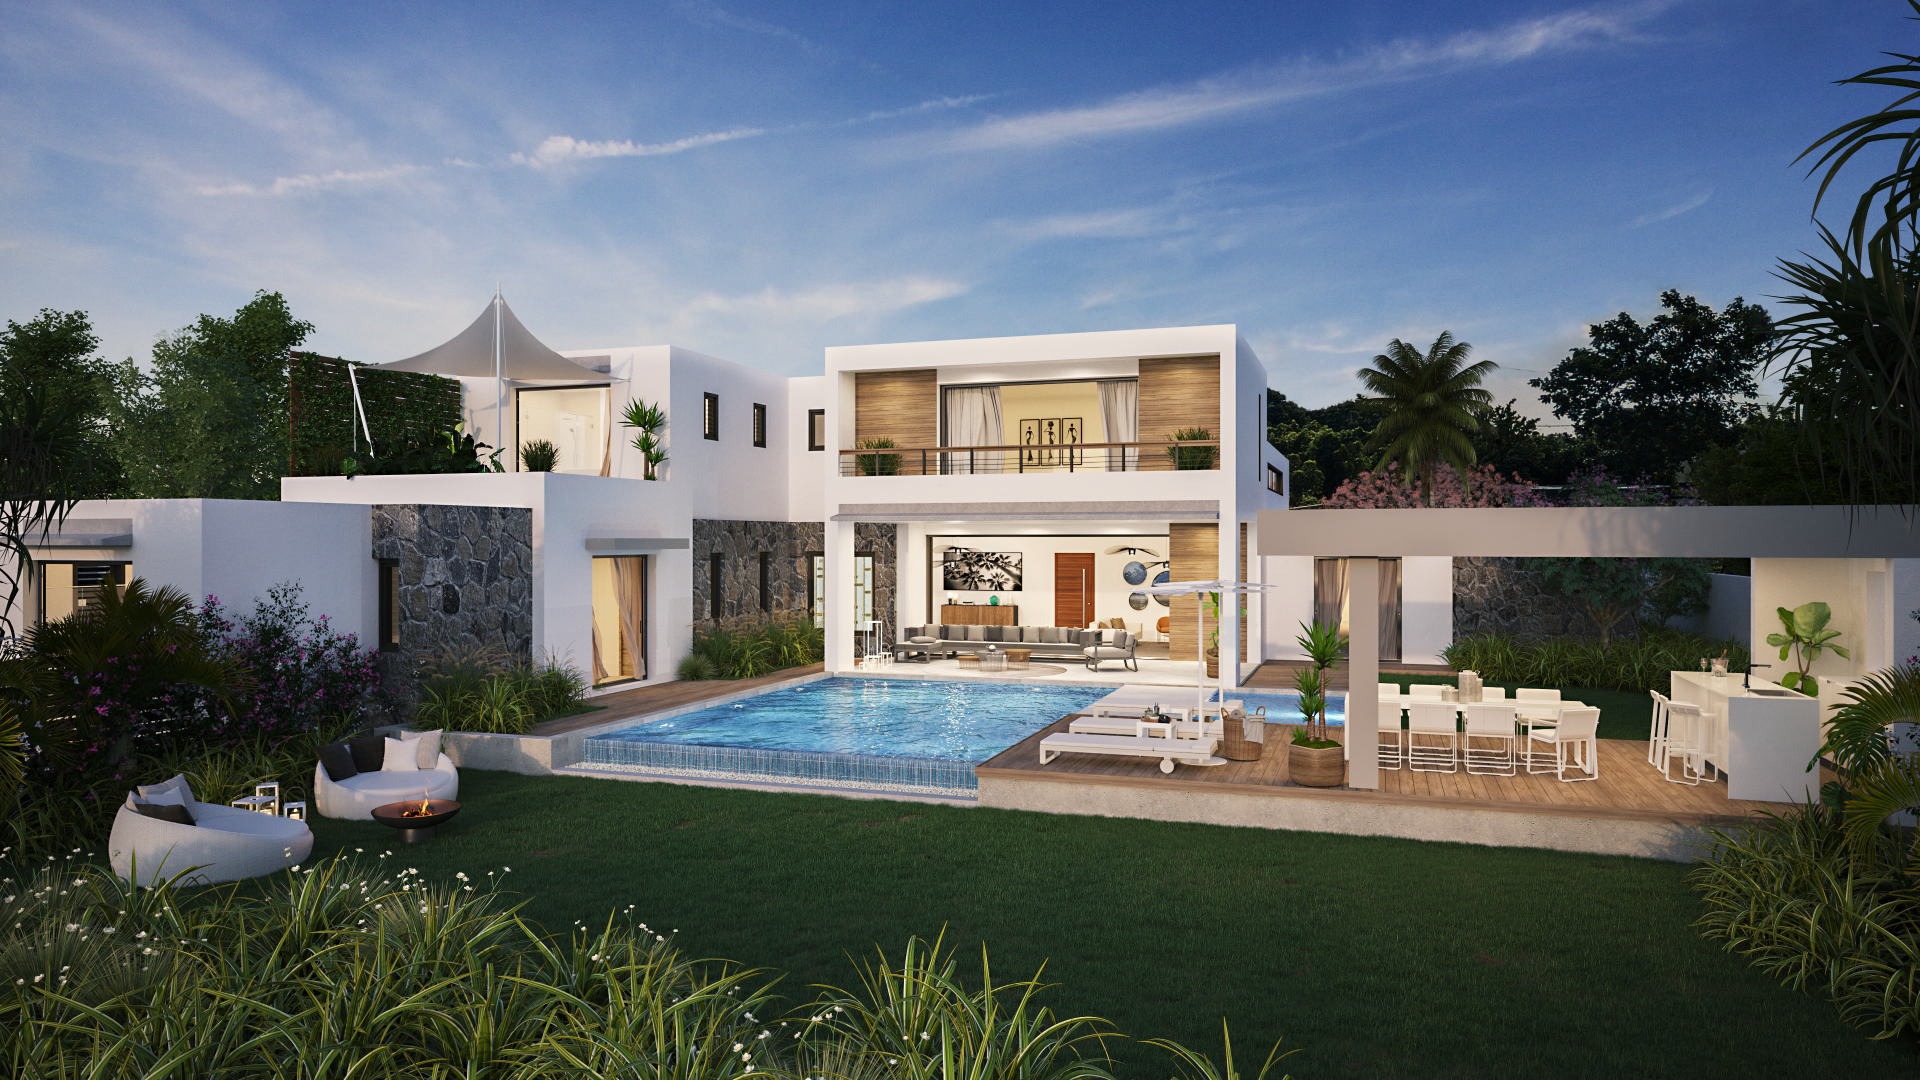 PDS Villa accessible to foreigners - Forêt Daruty